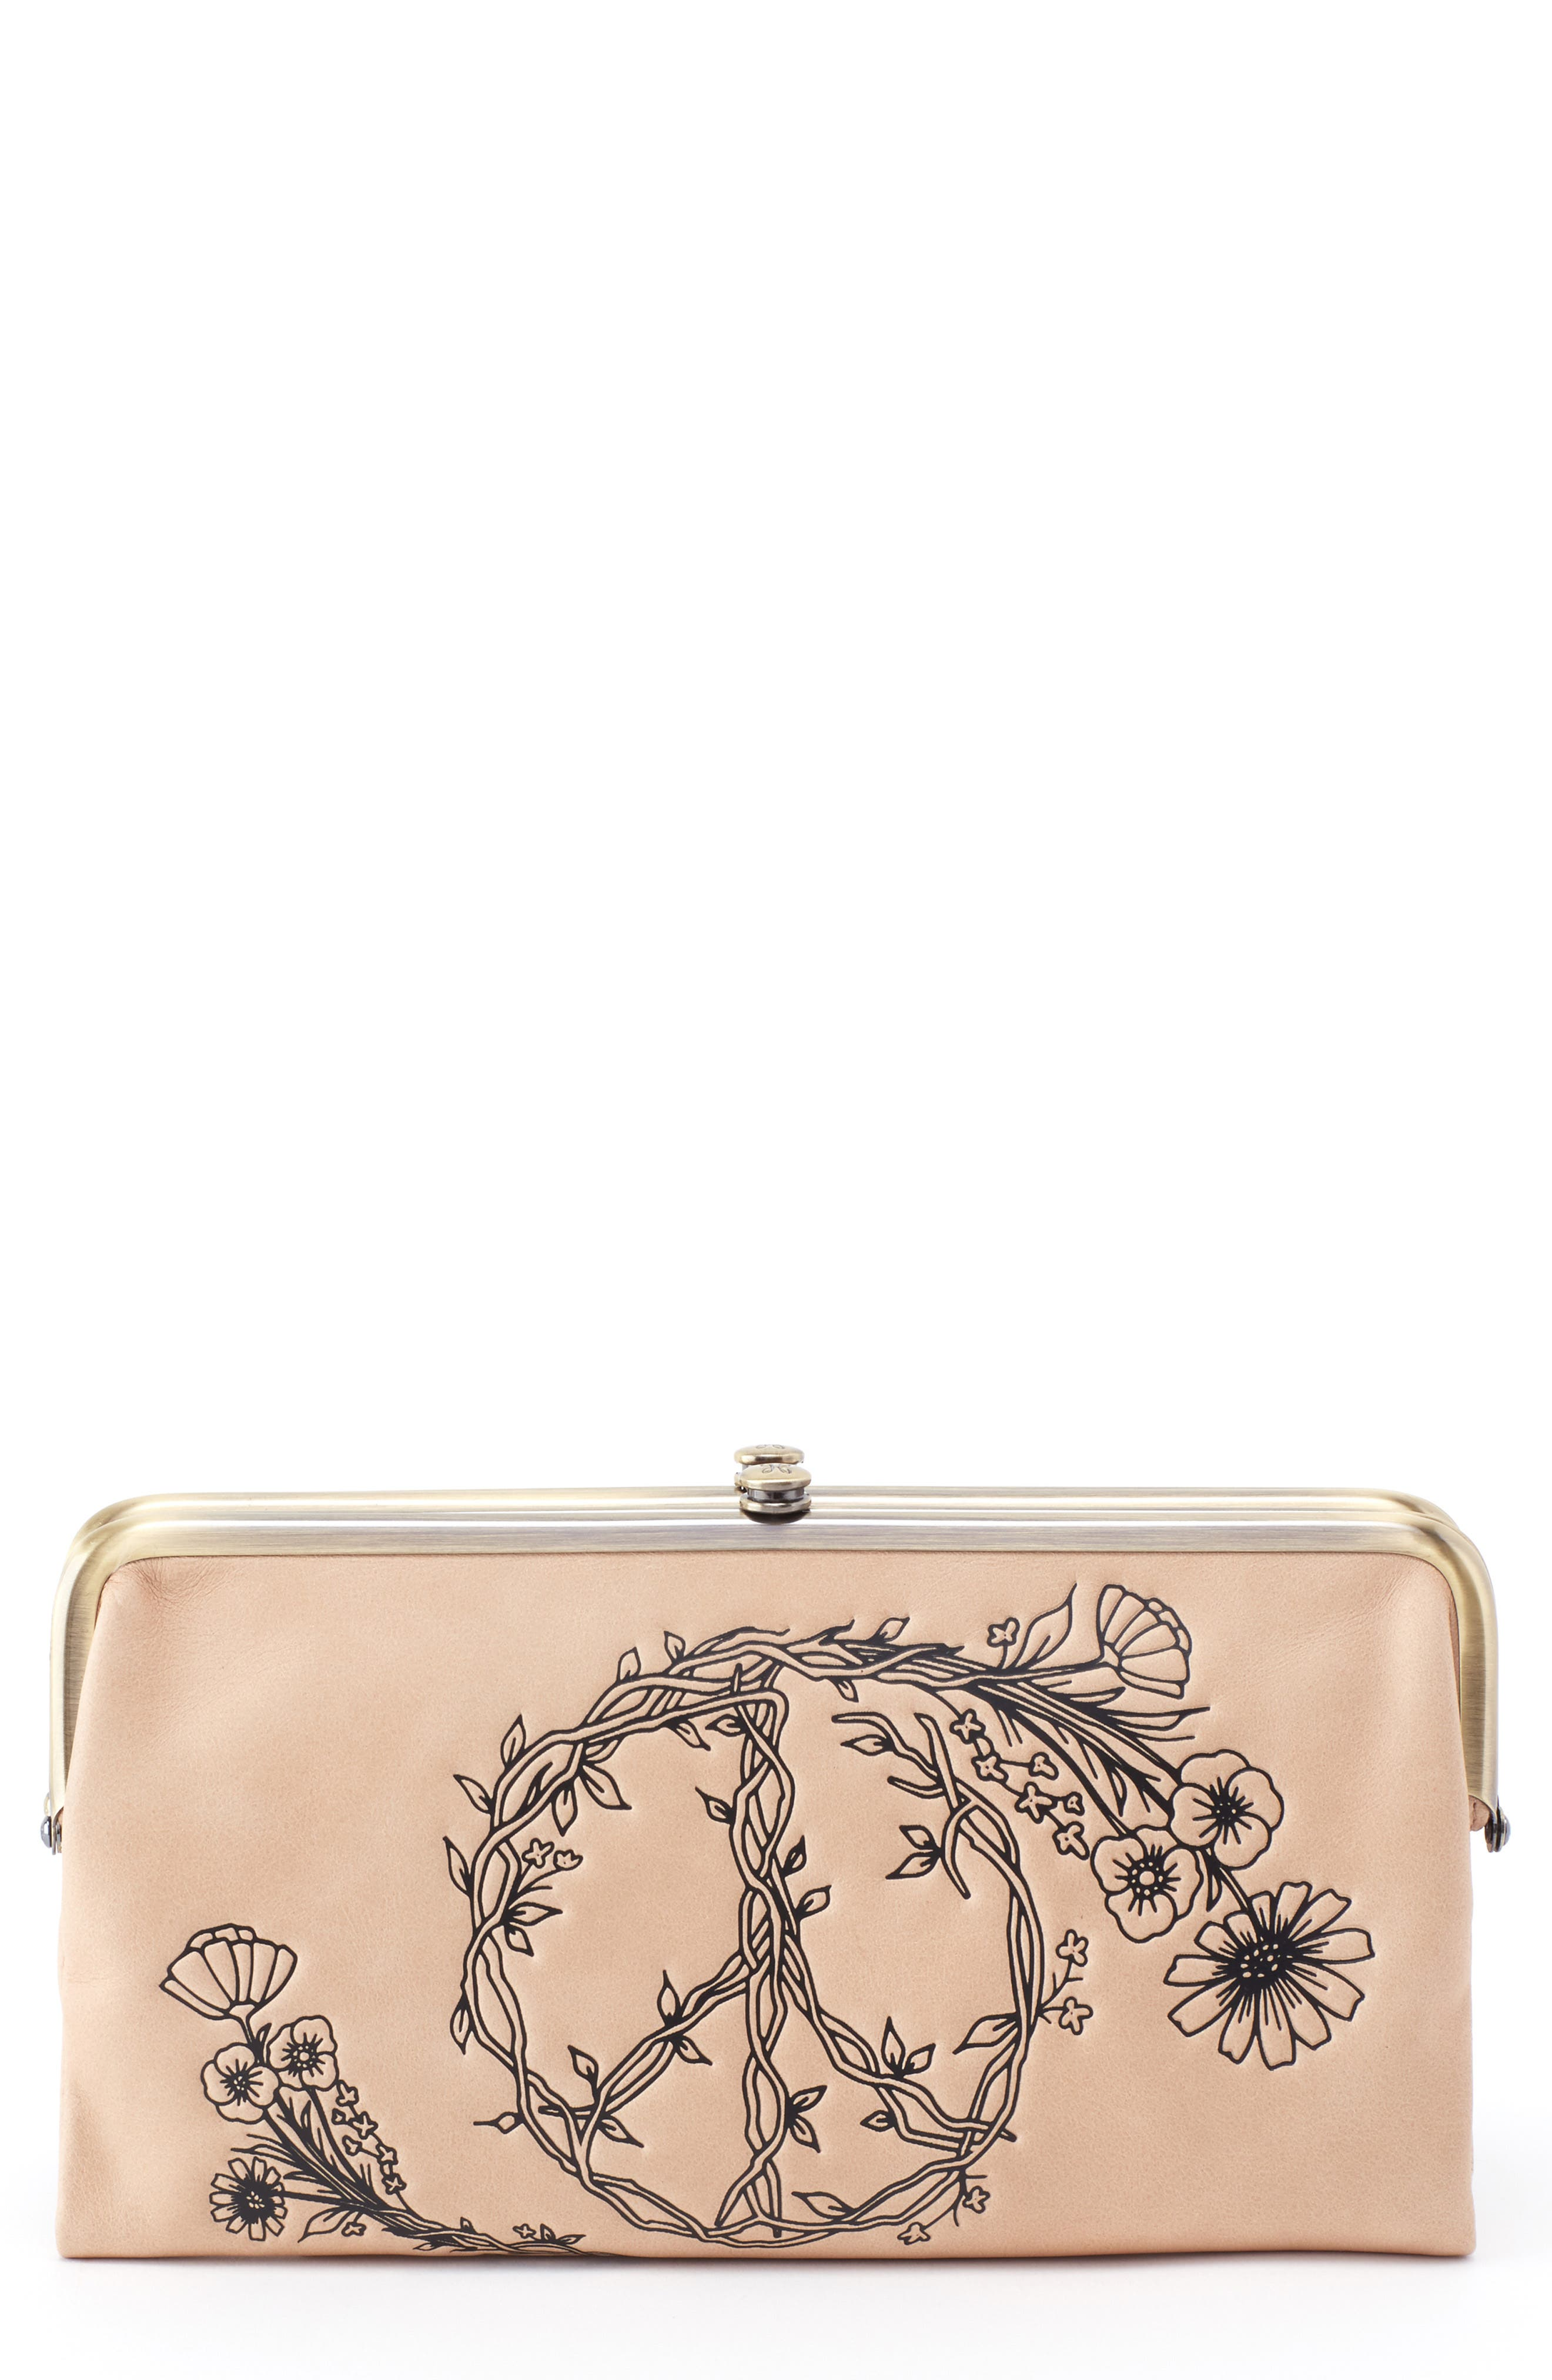 HOBO Lauren Floral Peace Leather Clutch, Main, color, PARCHMENT